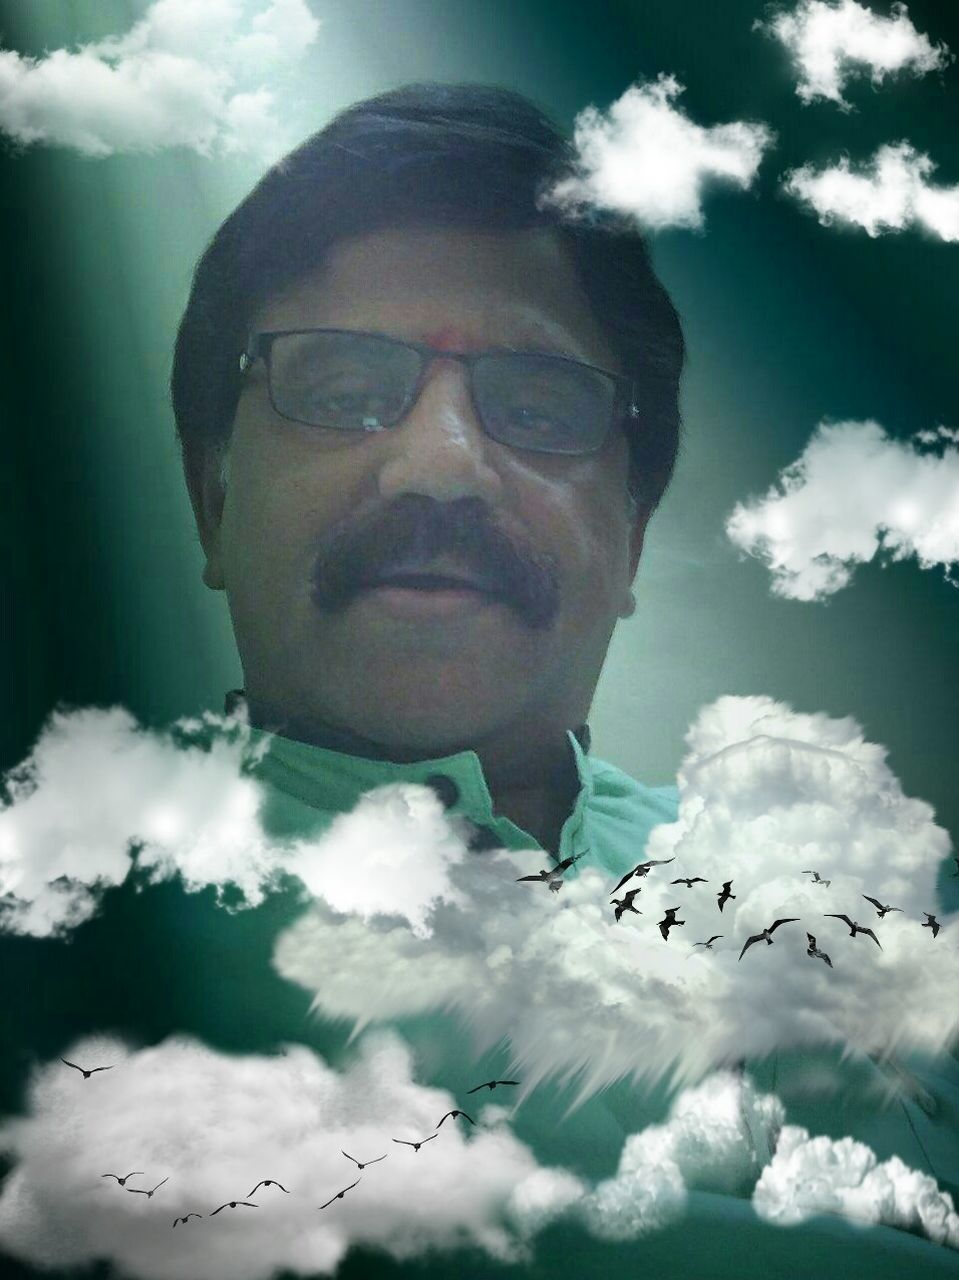 cloud - sky, one person, real people, sky, eyeglasses, young adult, young men, leisure activity, mid adult, mid adult men, headshot, outdoors, head and shoulders, front view, day, looking at camera, portrait, lifestyles, glasses, low angle view, nature, young women, close-up, people